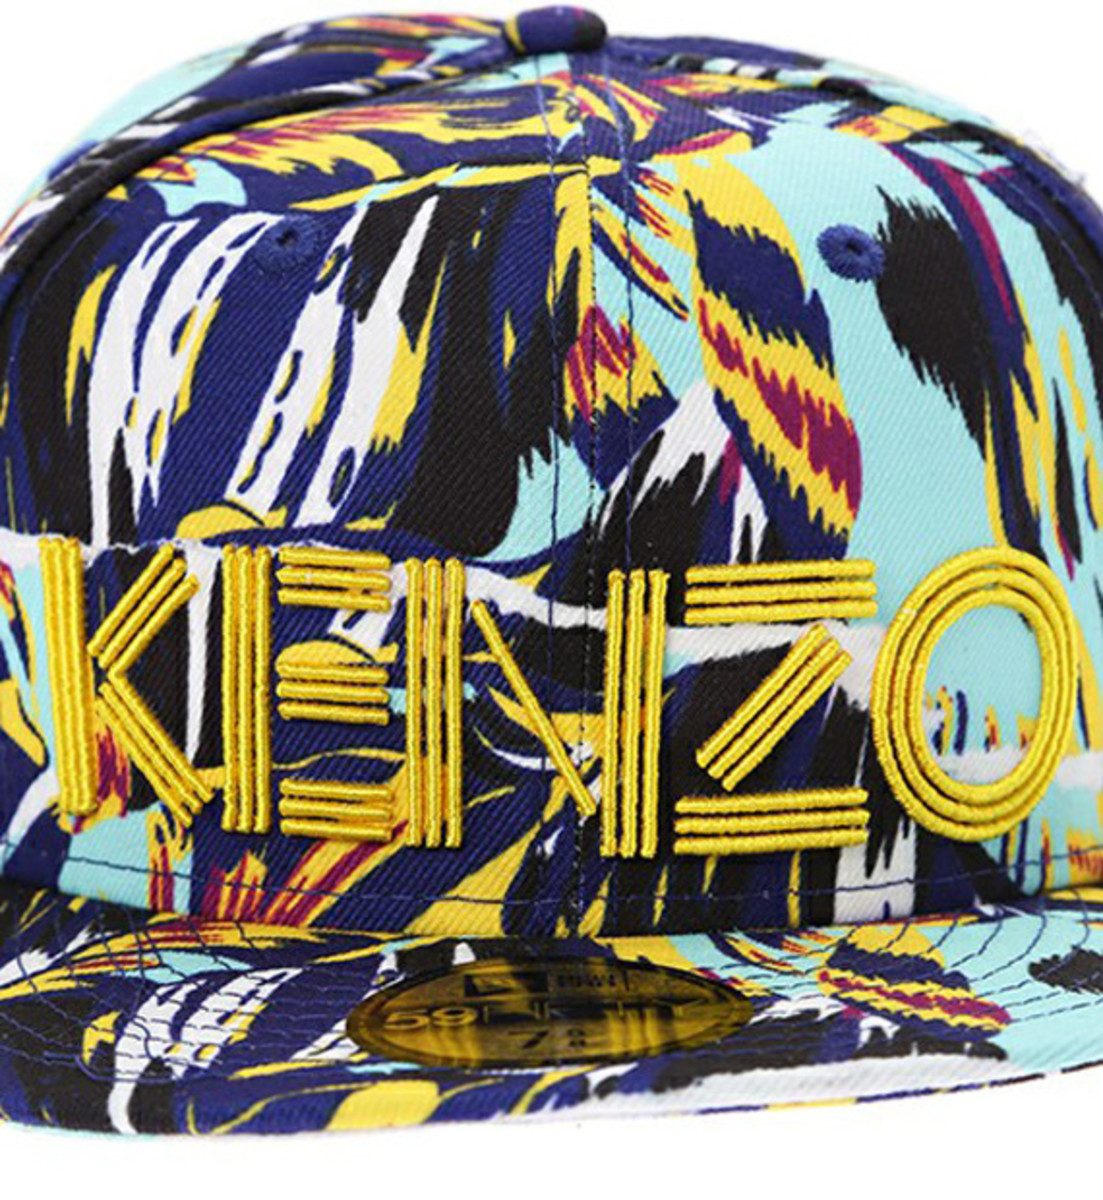 kenzo-x-new-era-torn-flower-fitted-cap-03